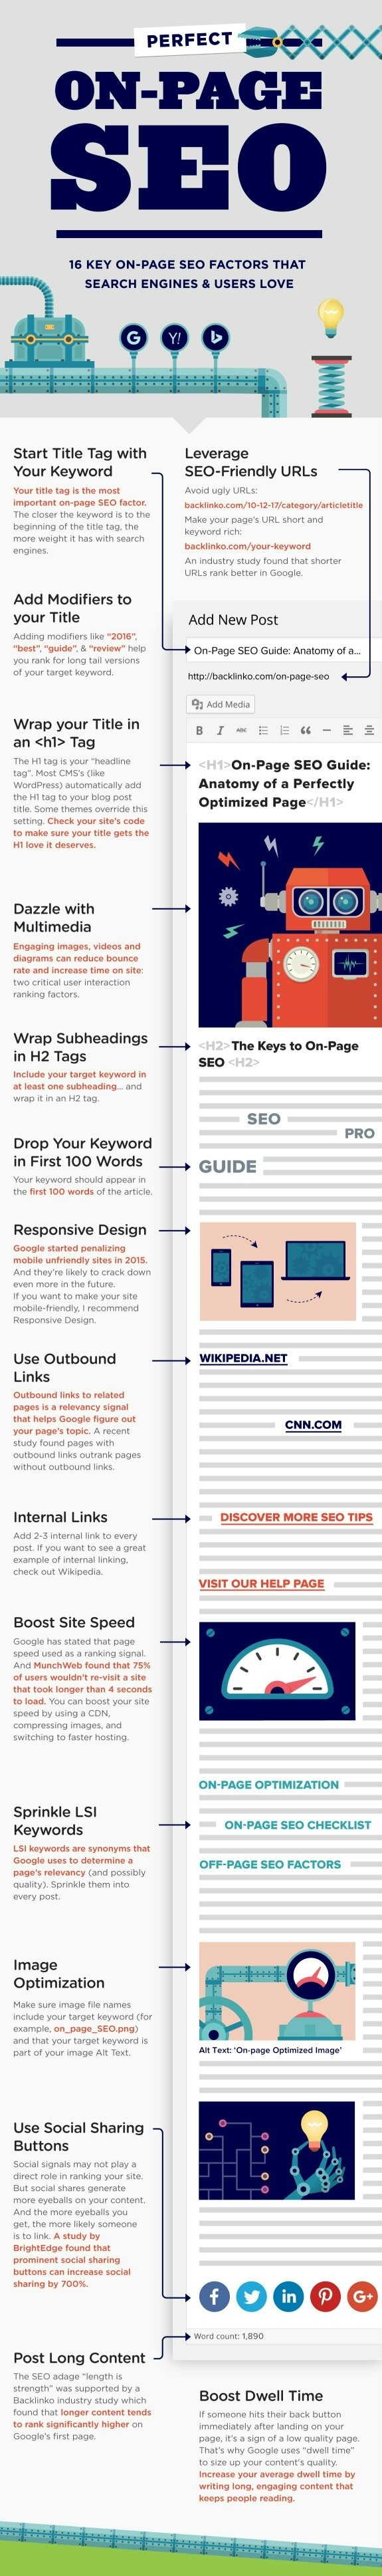 What Are The On Page Seo Techniques And Free Online Resources To